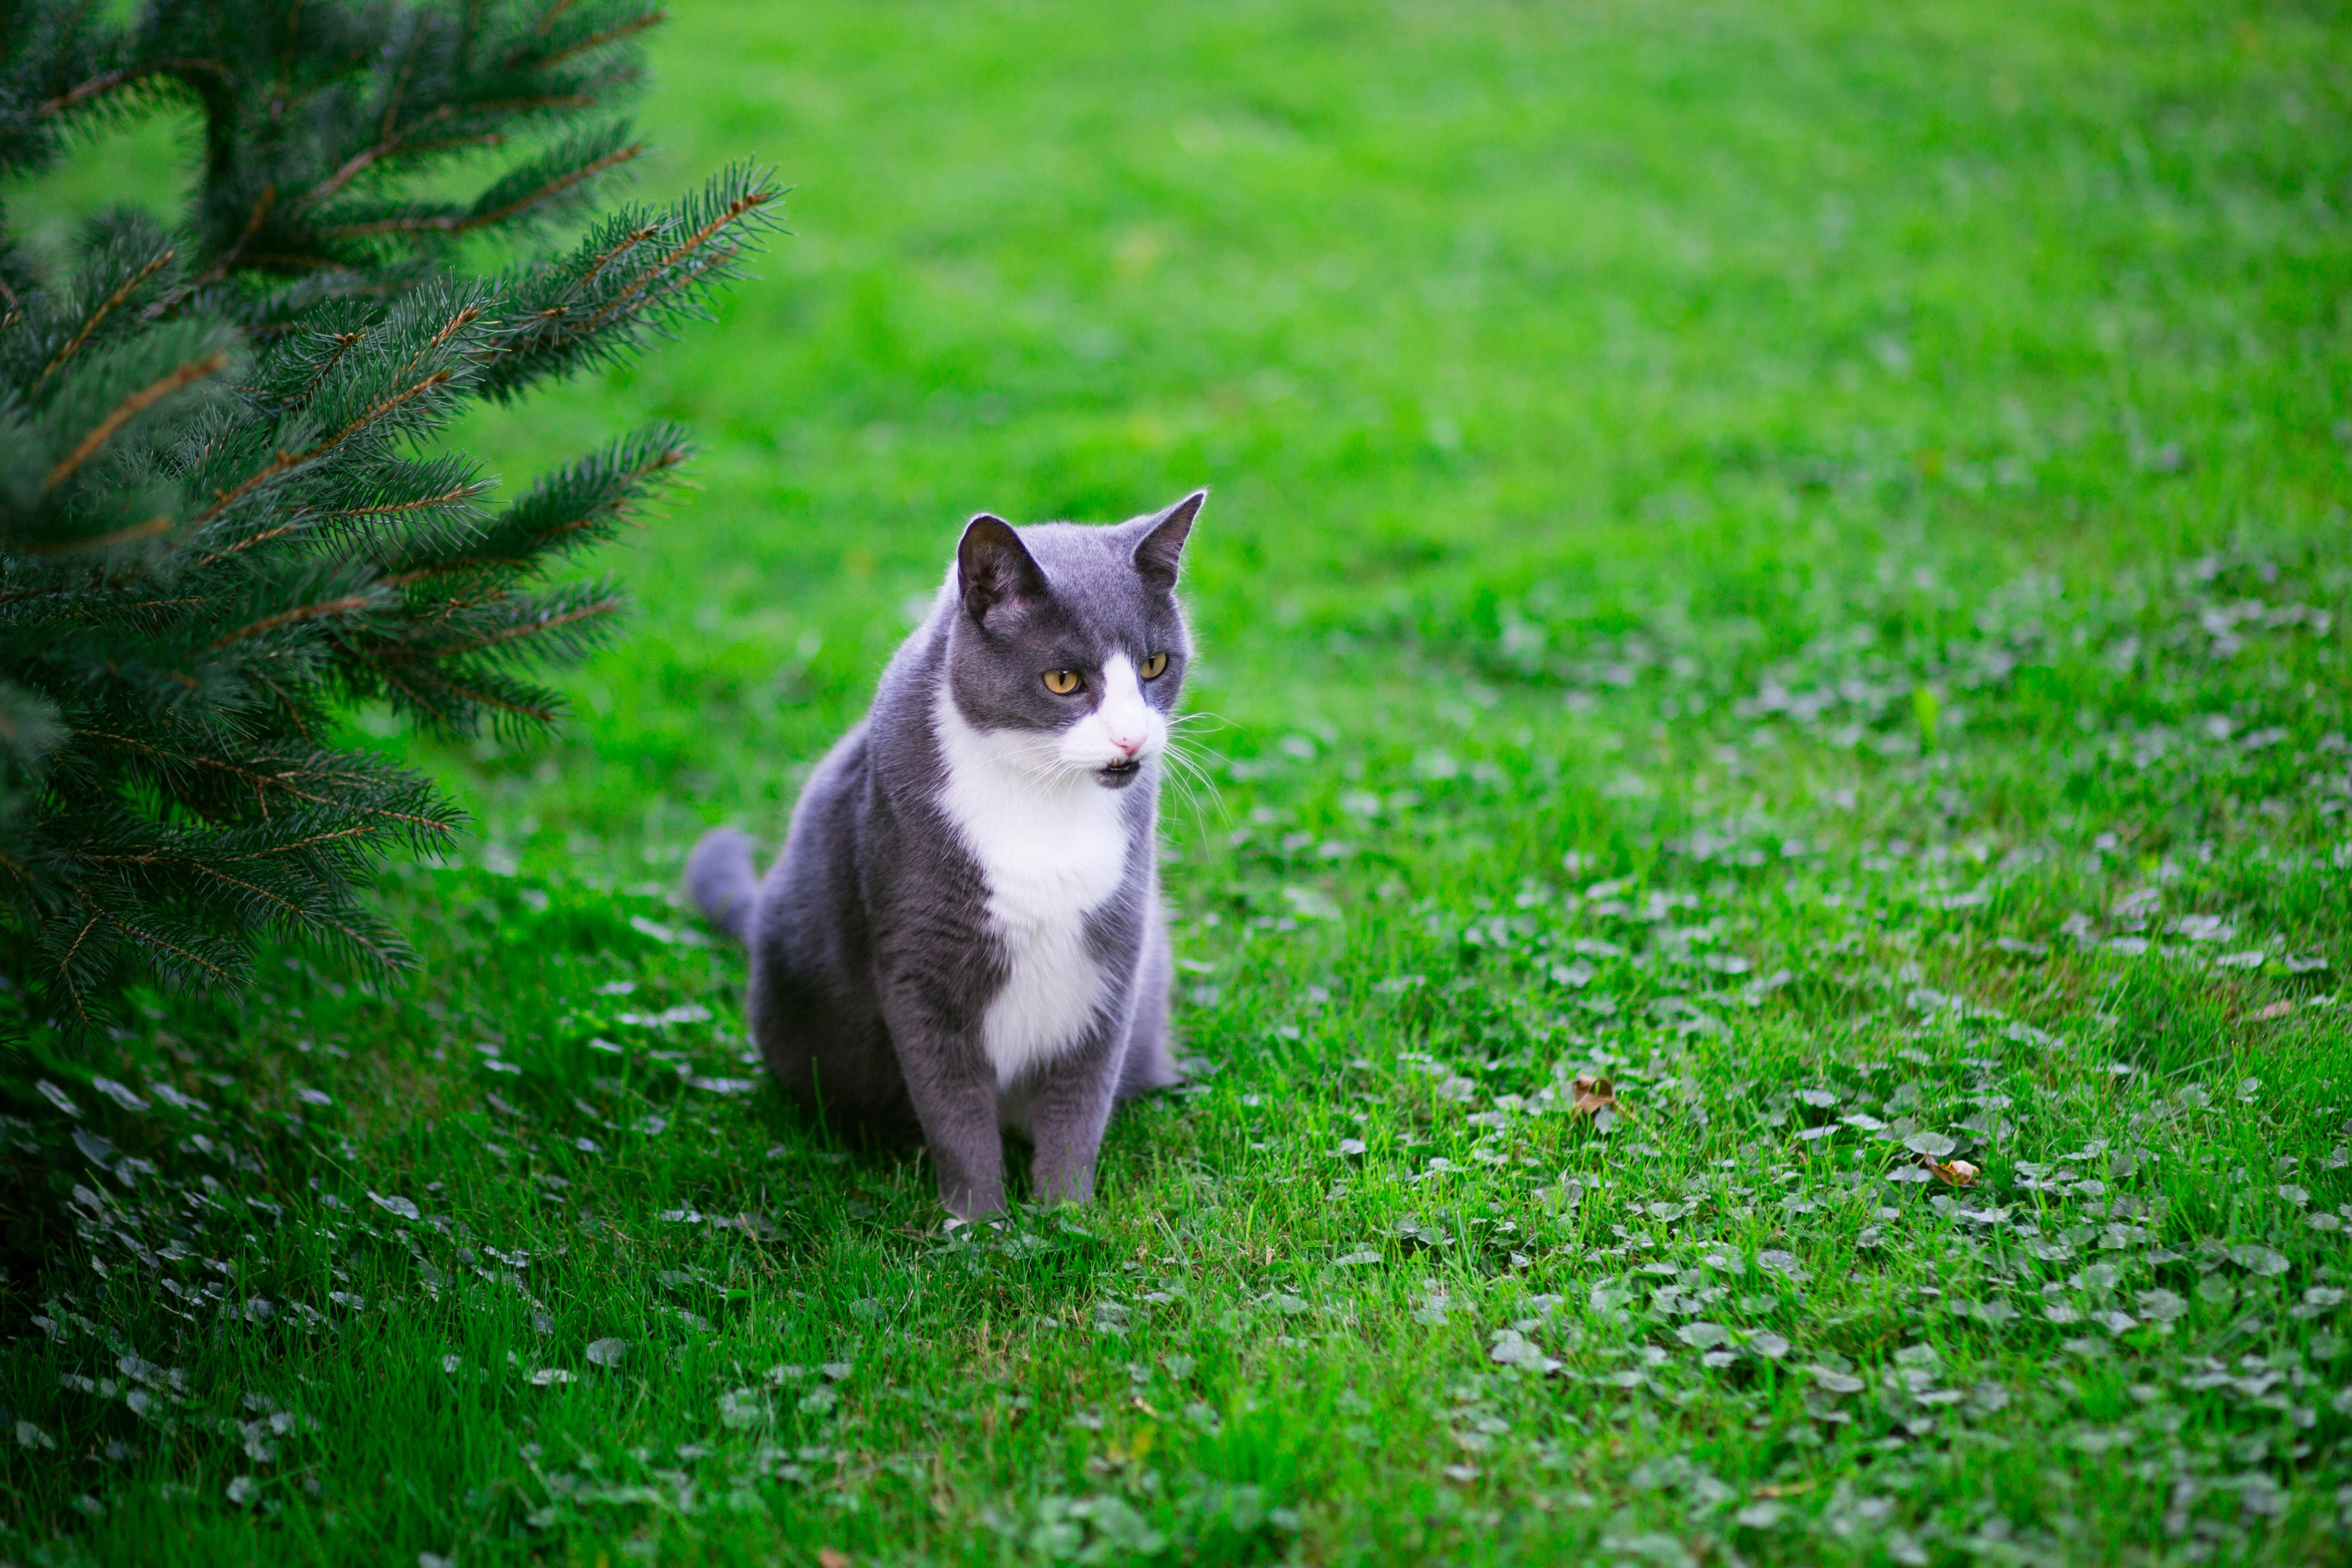 sitting gray and white cat near green leaf plant